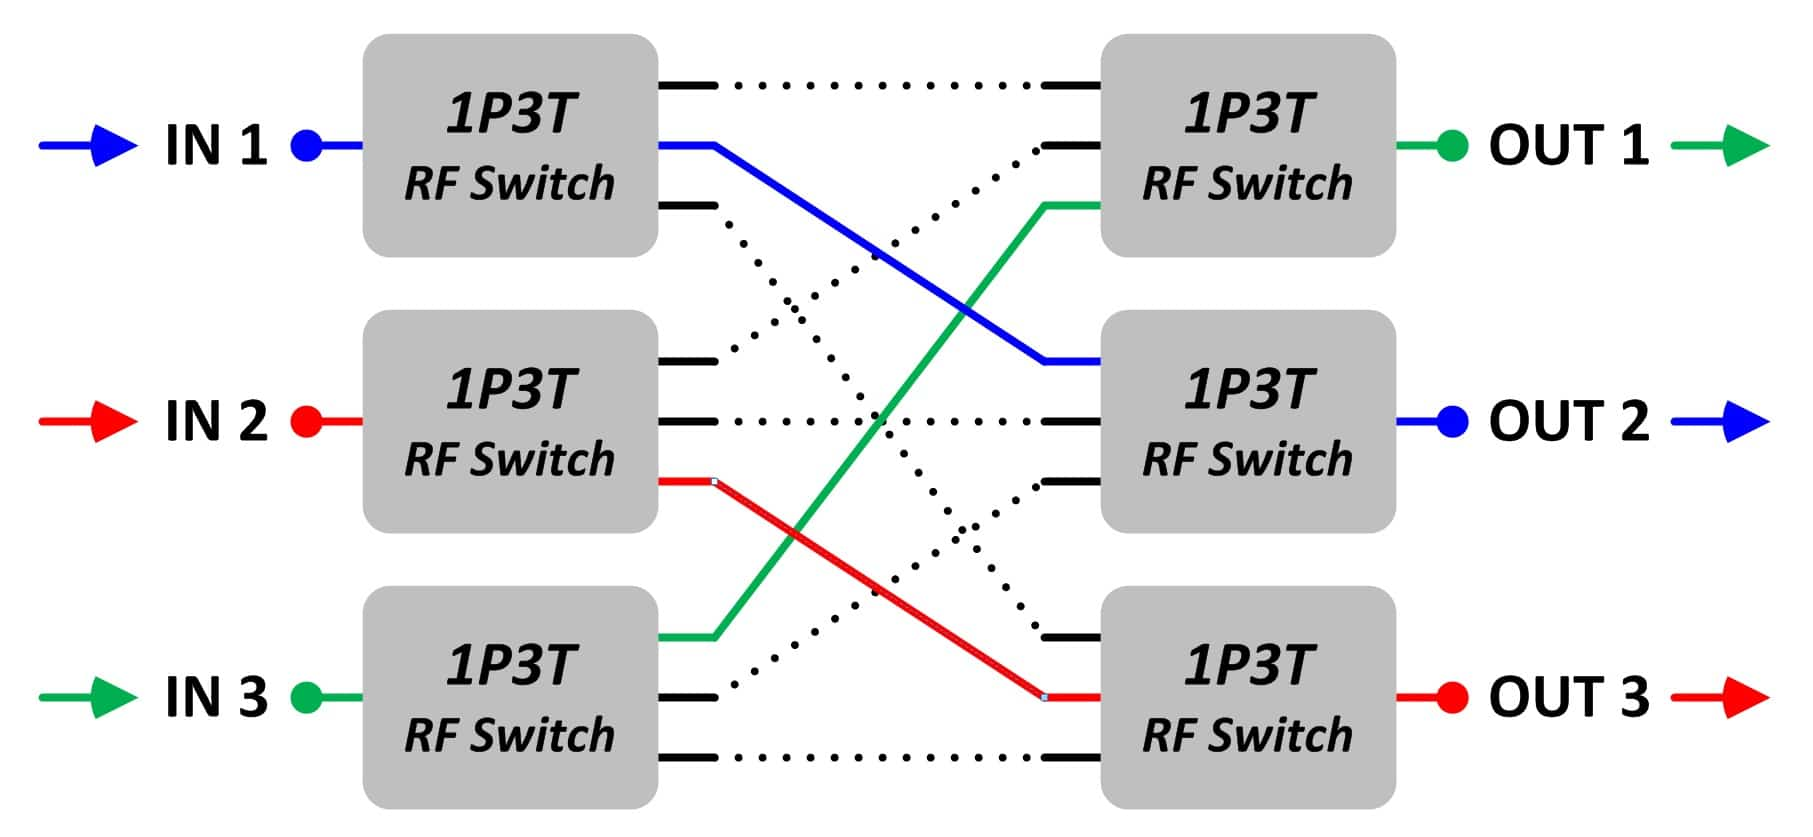 Matrix Switches Jfw Industries Rf Switch Attenuator Each Input Signal Is Connected To One Output Port The Three Colored Paths Are Active Through A 3 X Blocking Has